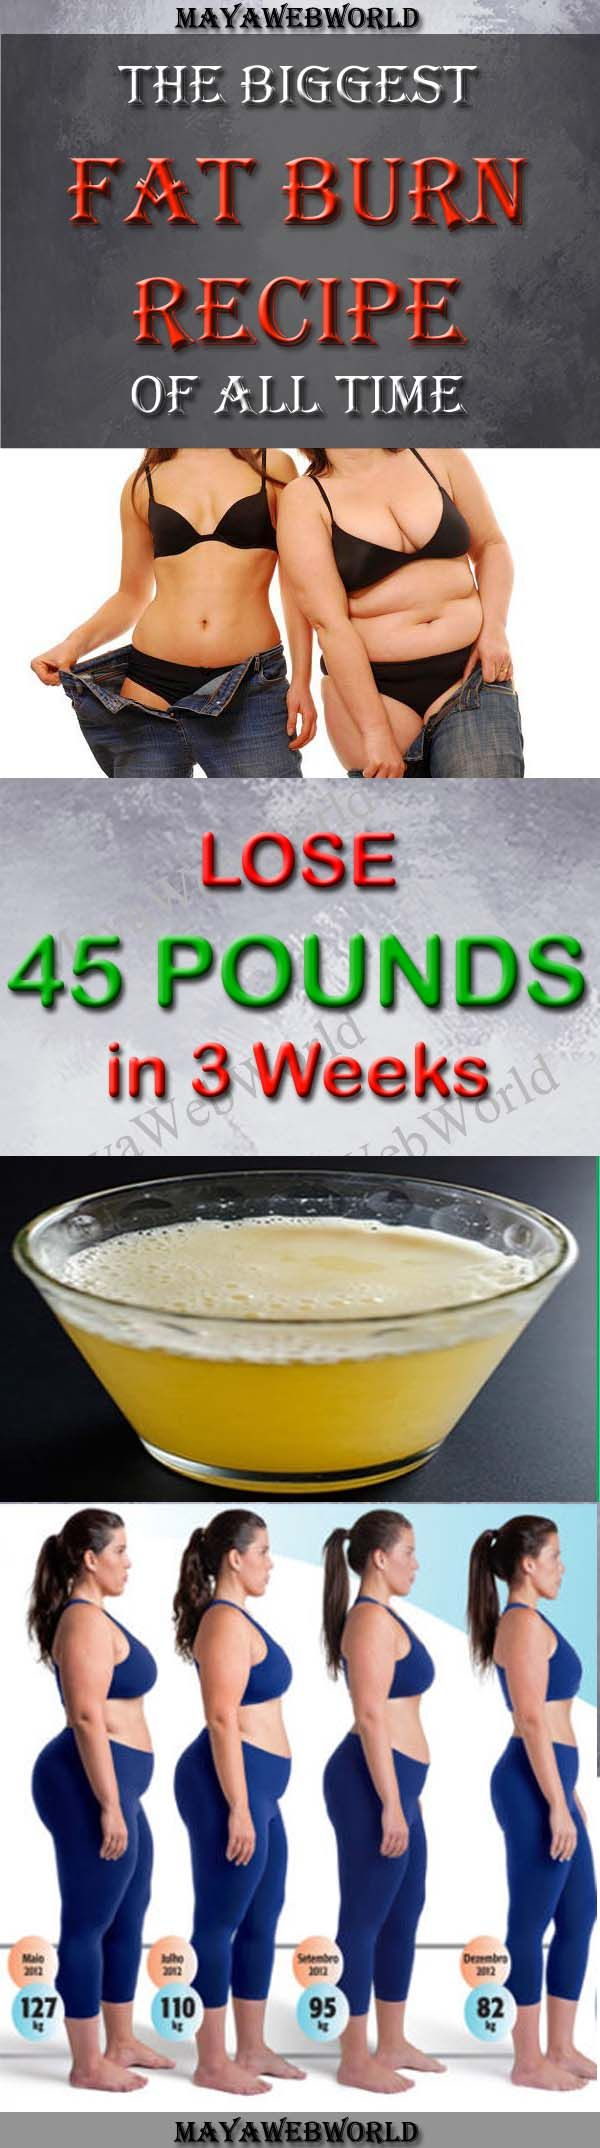 Easy Fat Burn- Lose 45 Pounds in 3 Weeks – MayaWebWorld